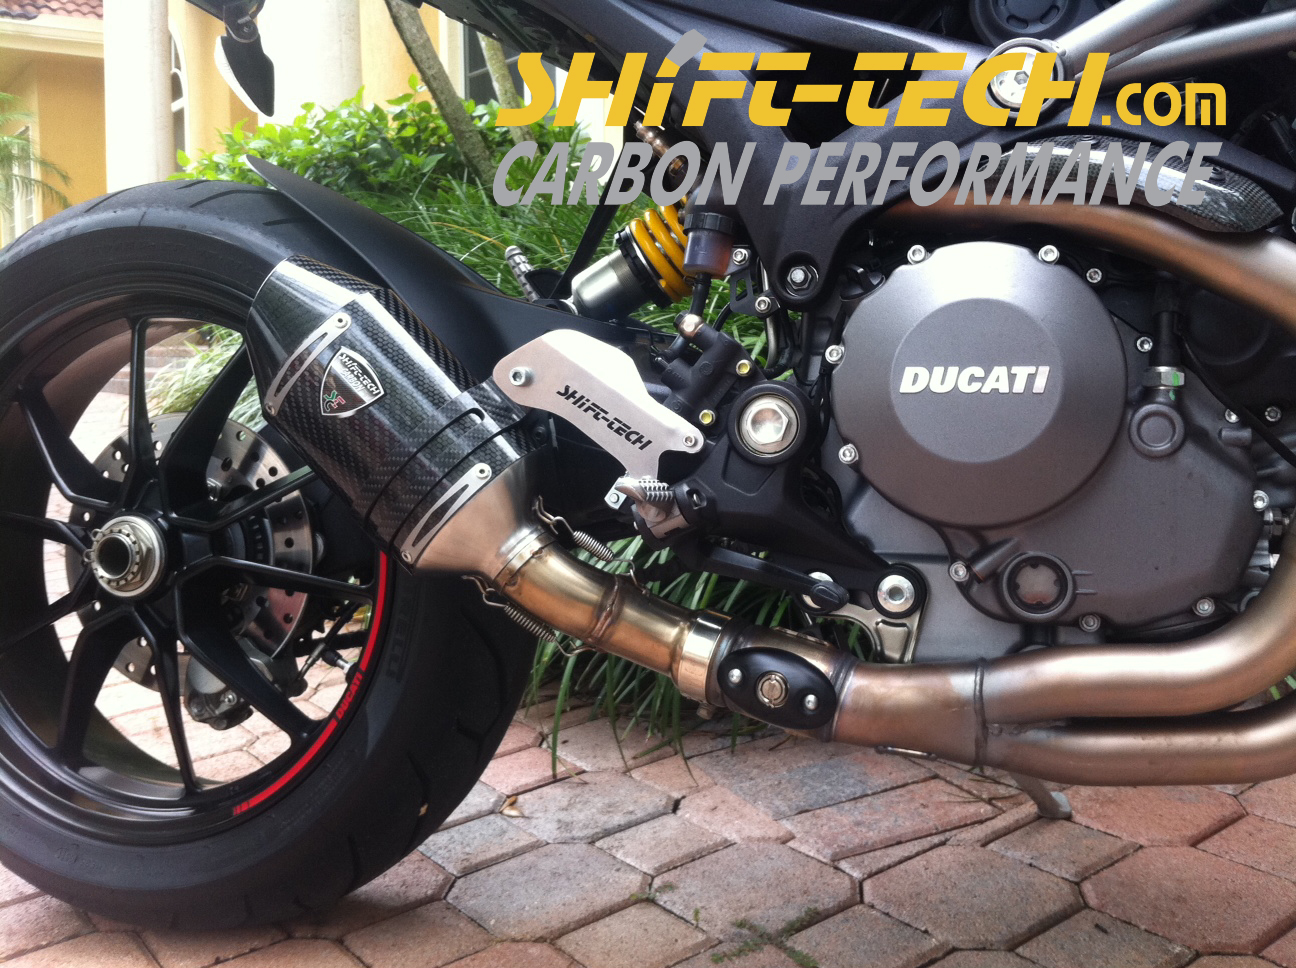 shift-tech monster evo1100 gp stage2 carbon slip-on - ducati.ms